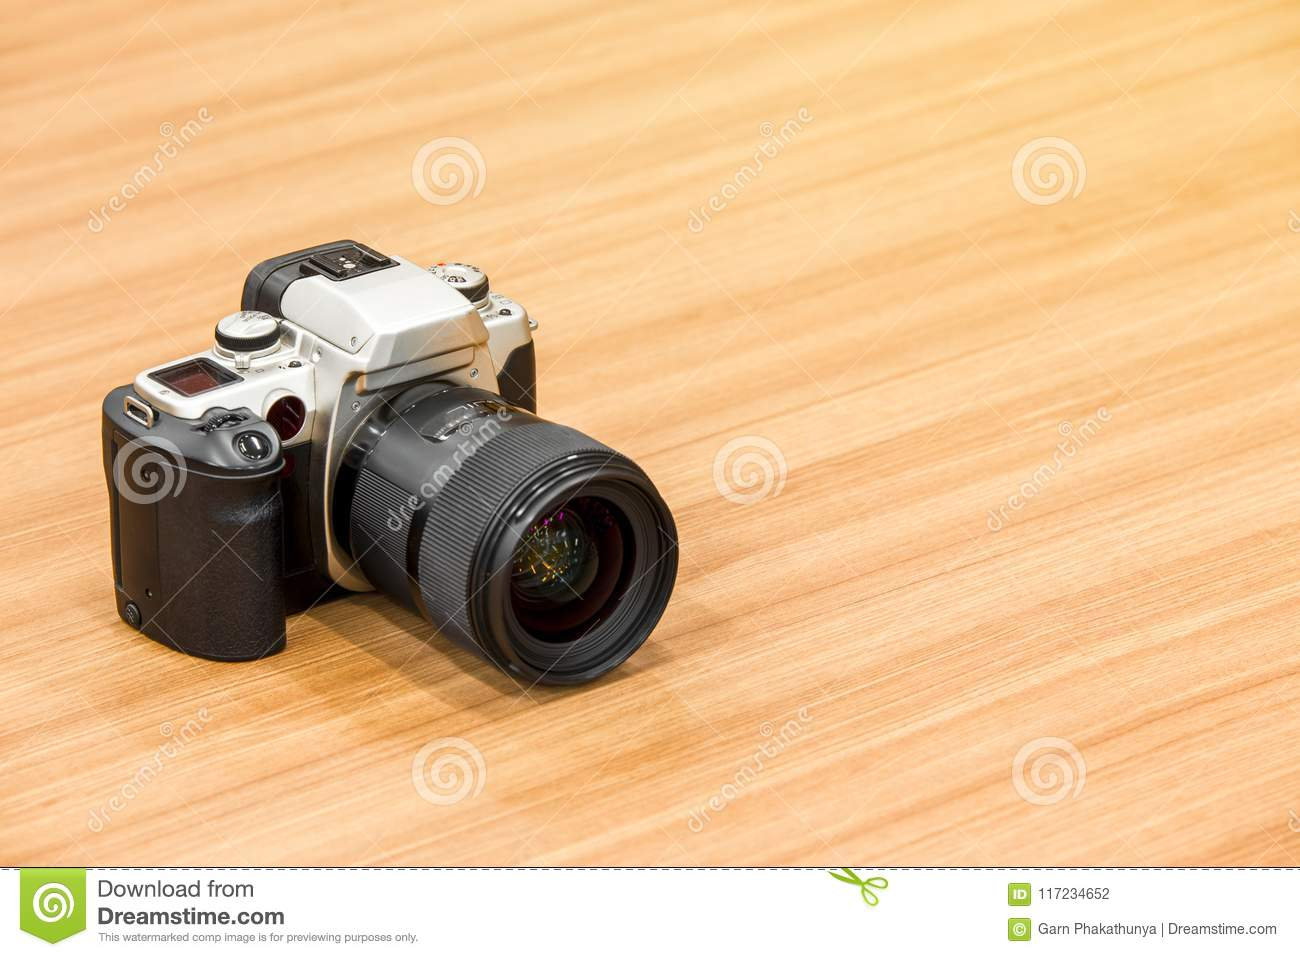 Dslr Camera On Wooden Desk Background Stock Photo Image Of Dslr